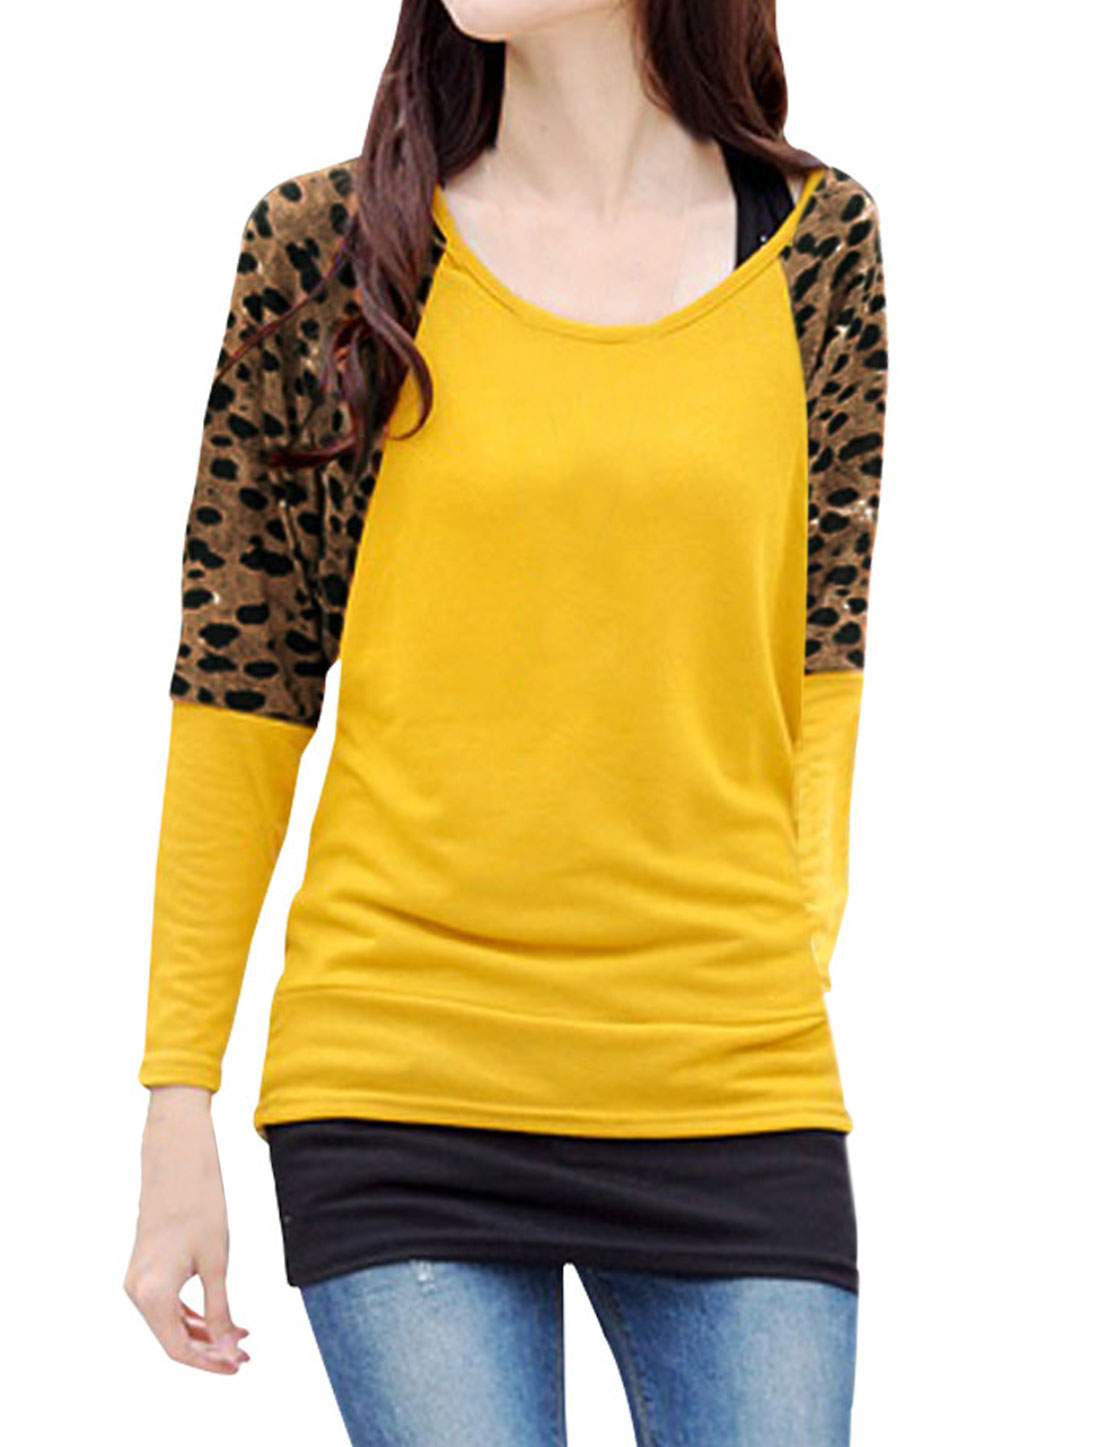 Ladies Yellow Raglan Sleeves Leopard Prints Pullover Casual Blouse XS